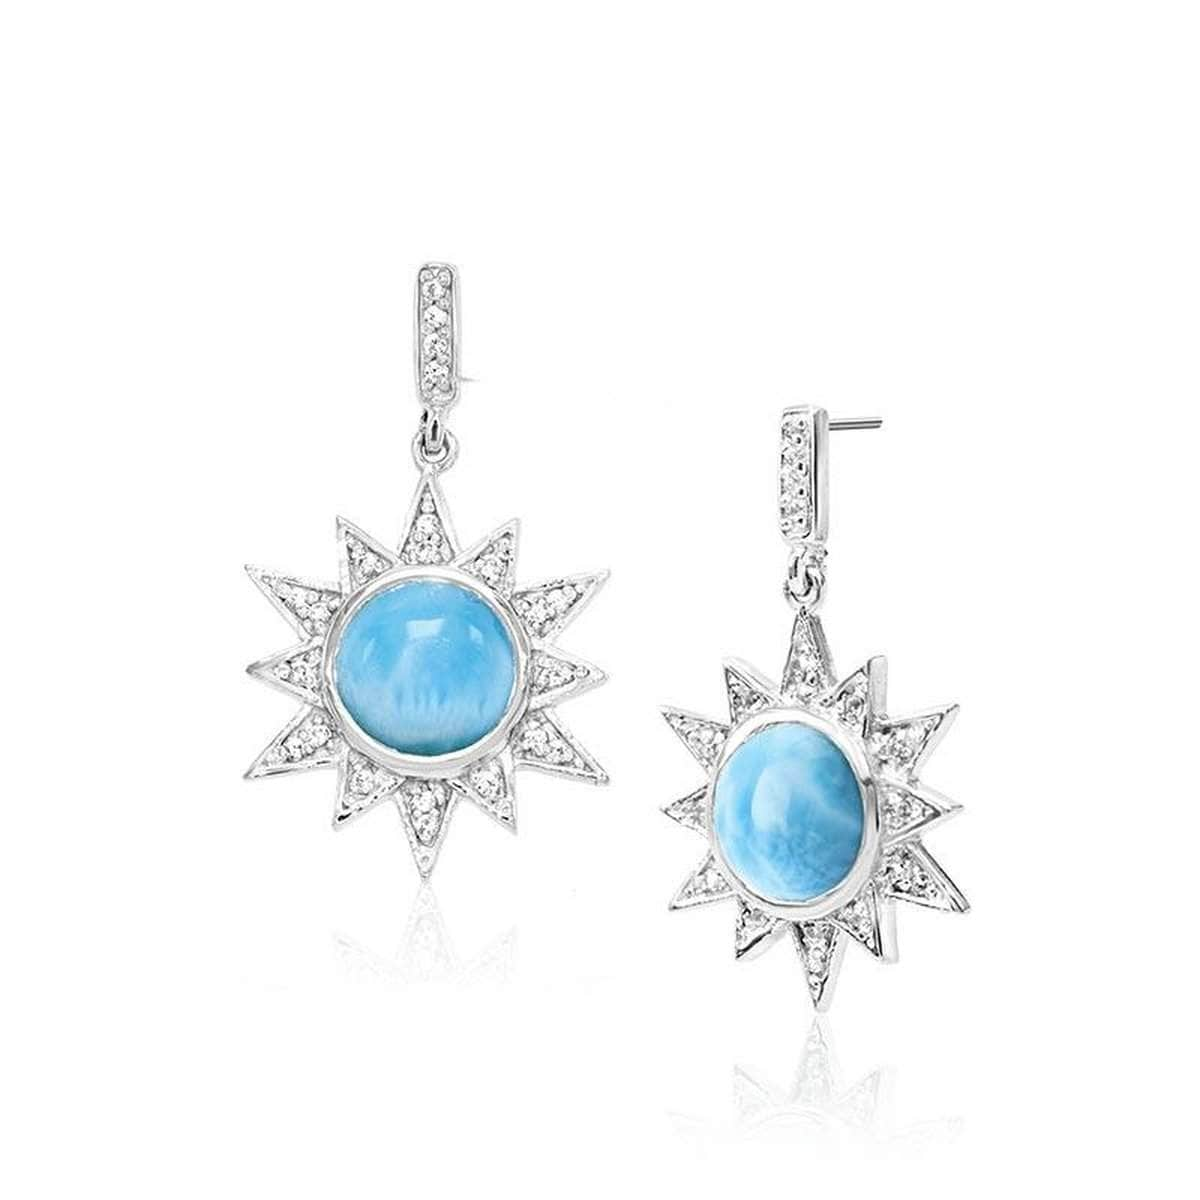 Solstice Earrings - Esols00-00-Marahlago Larimar-Renee Taylor Gallery